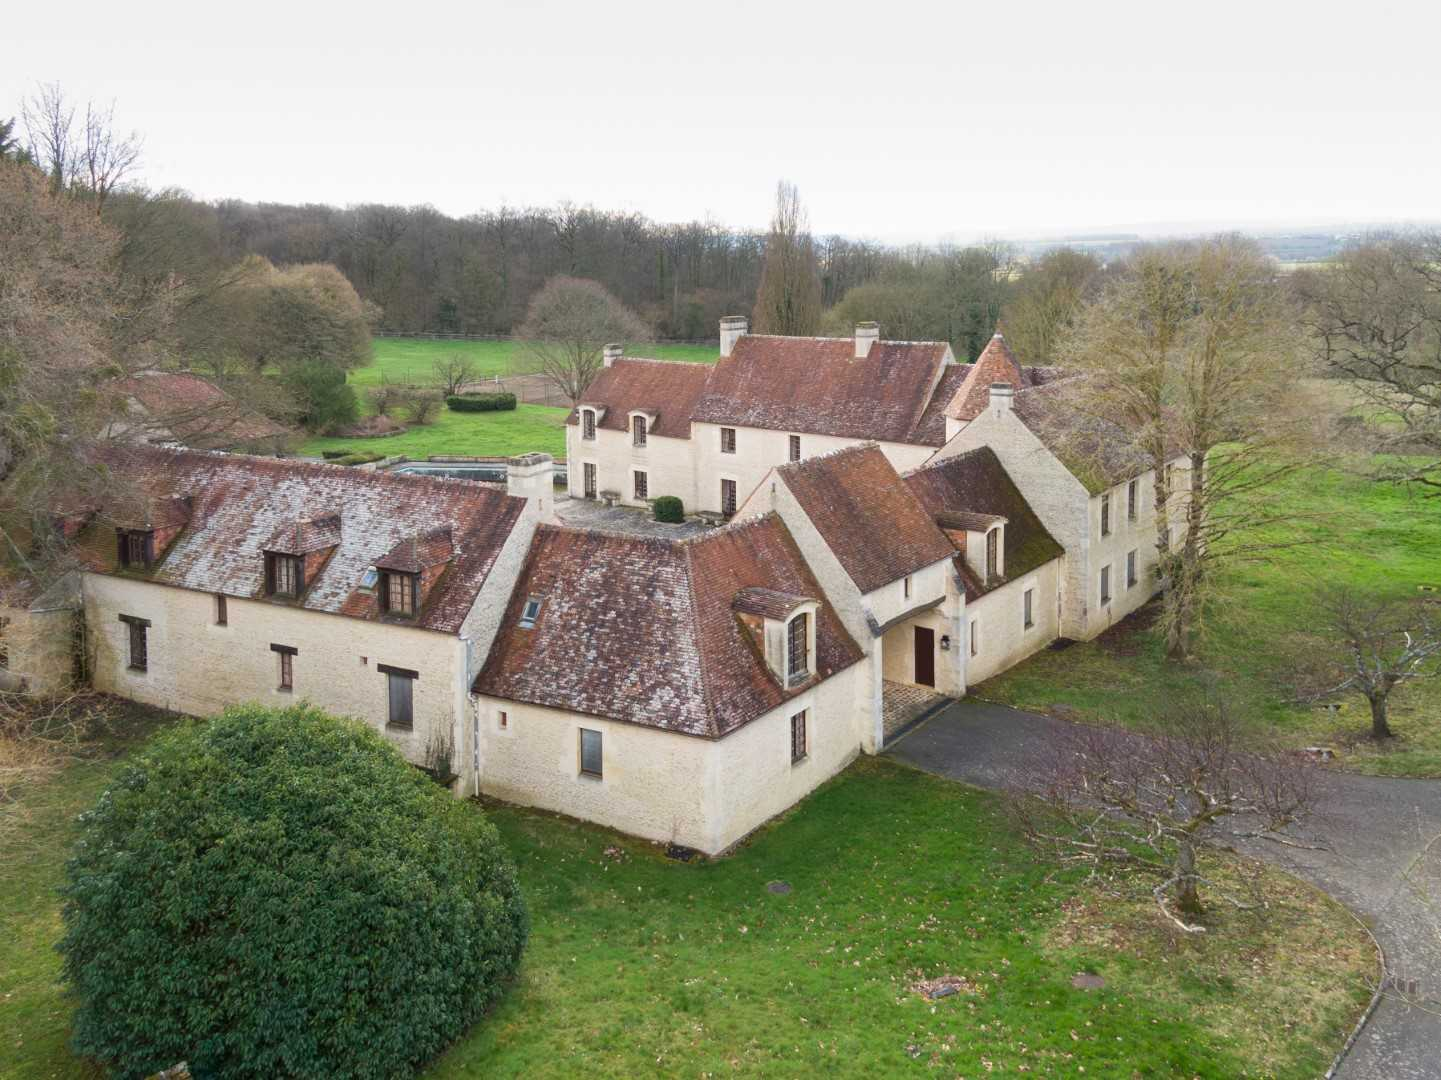 Equestrian property for auction  Haras with 110 hectares